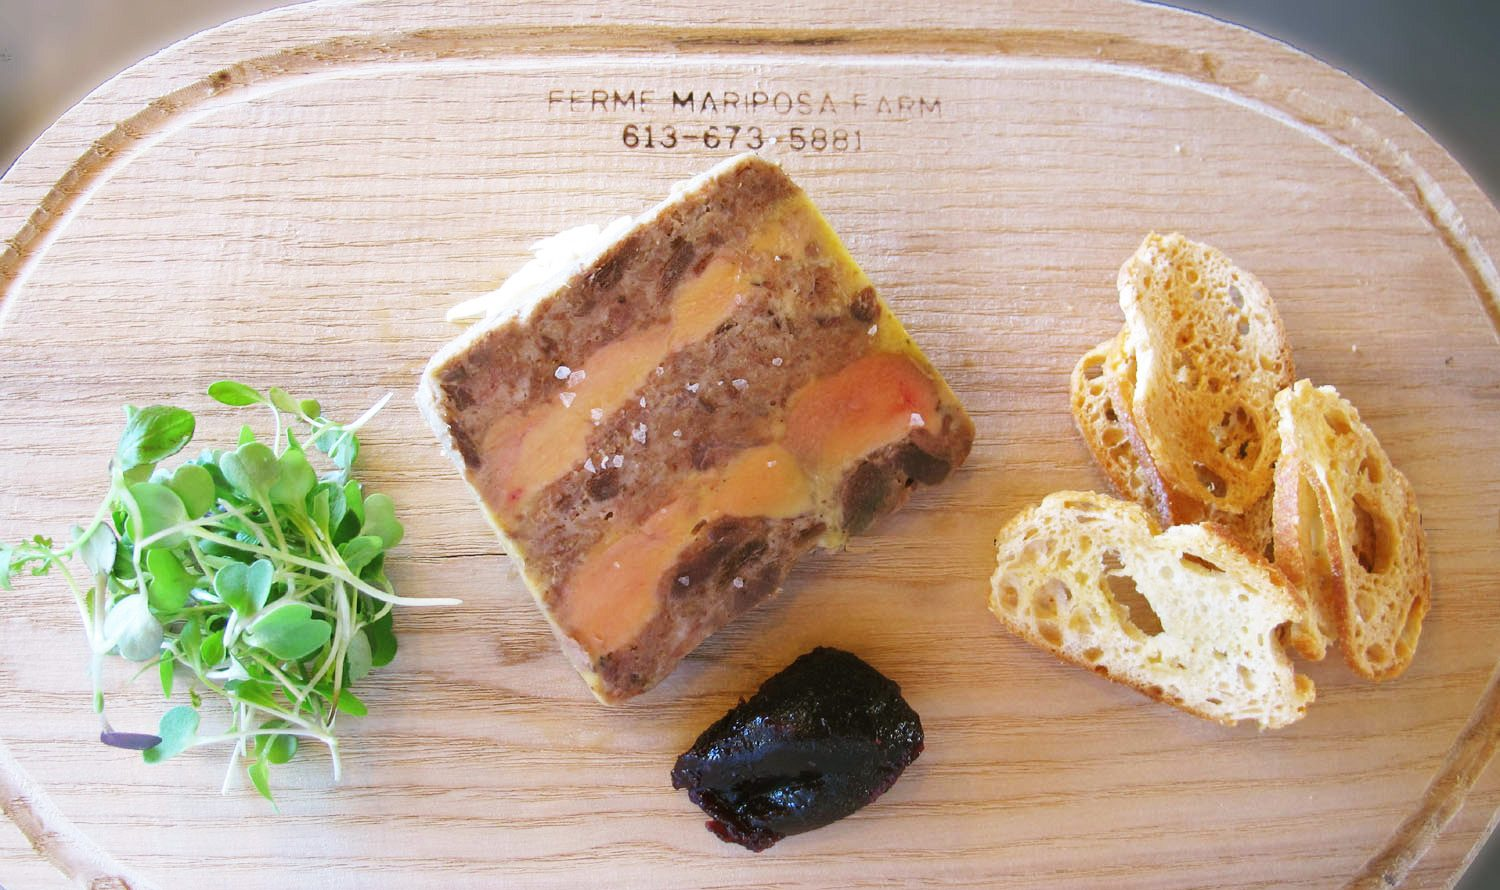 Should Canada ban foie gras? What if there was a middle way?